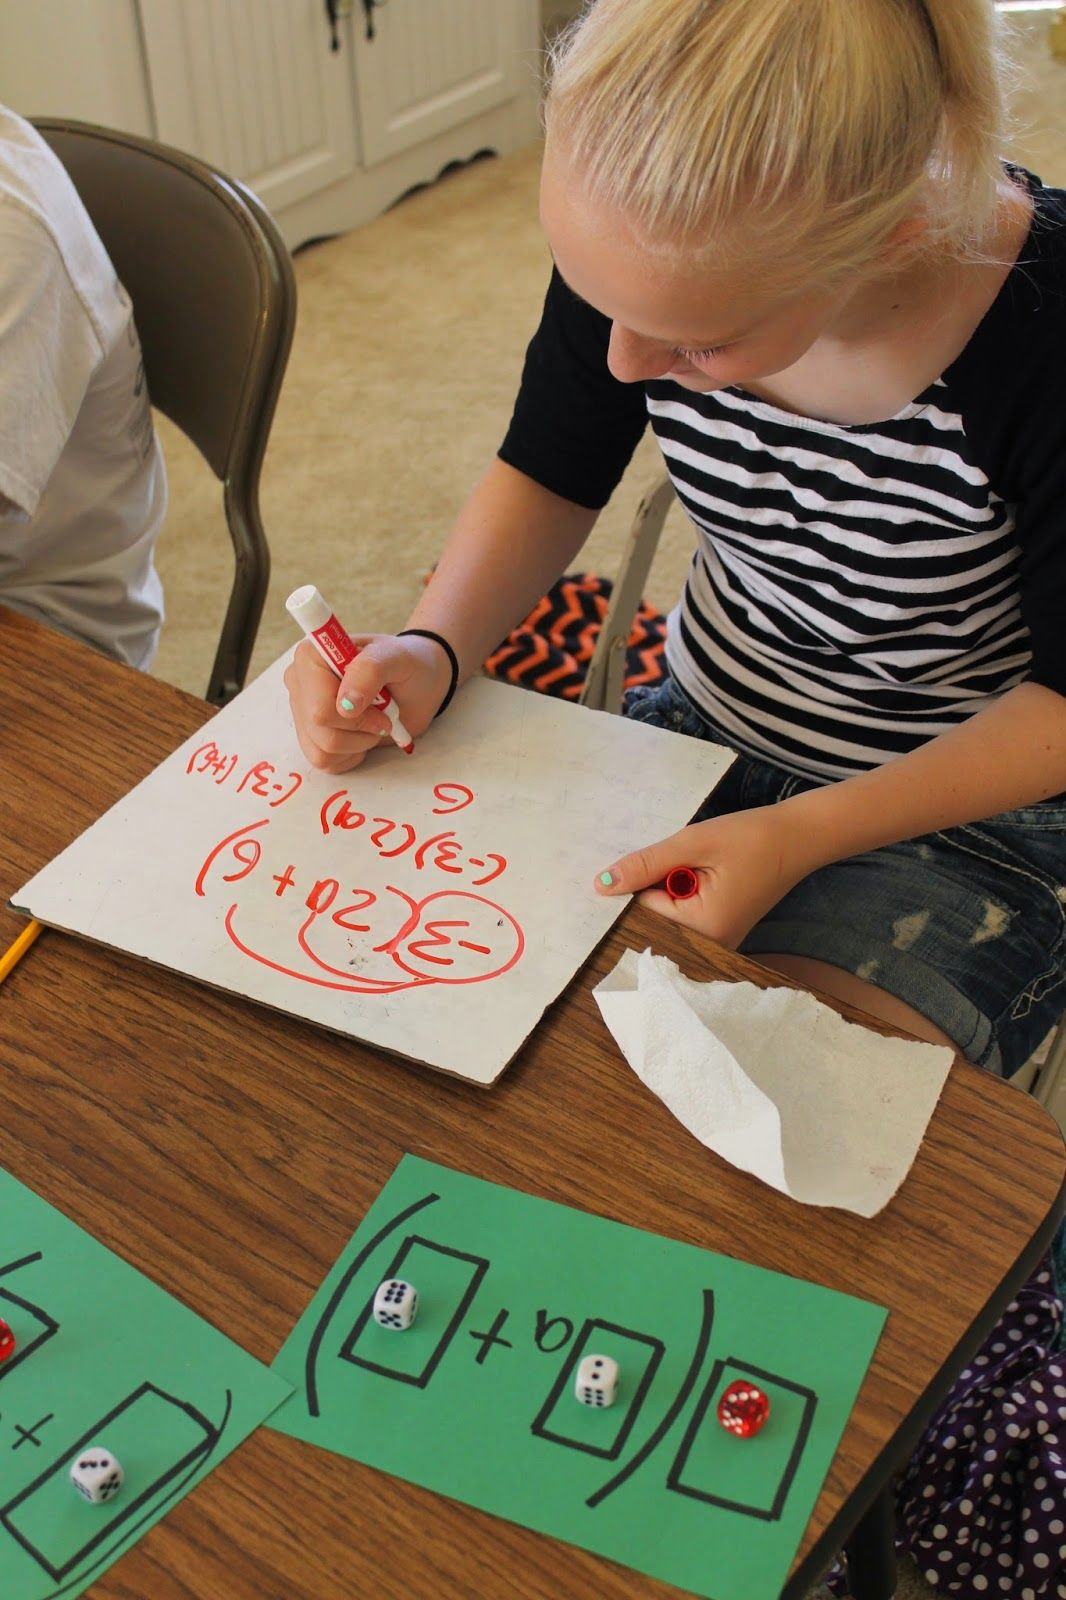 Apples 4 Bookworms Distributive Property Hands On